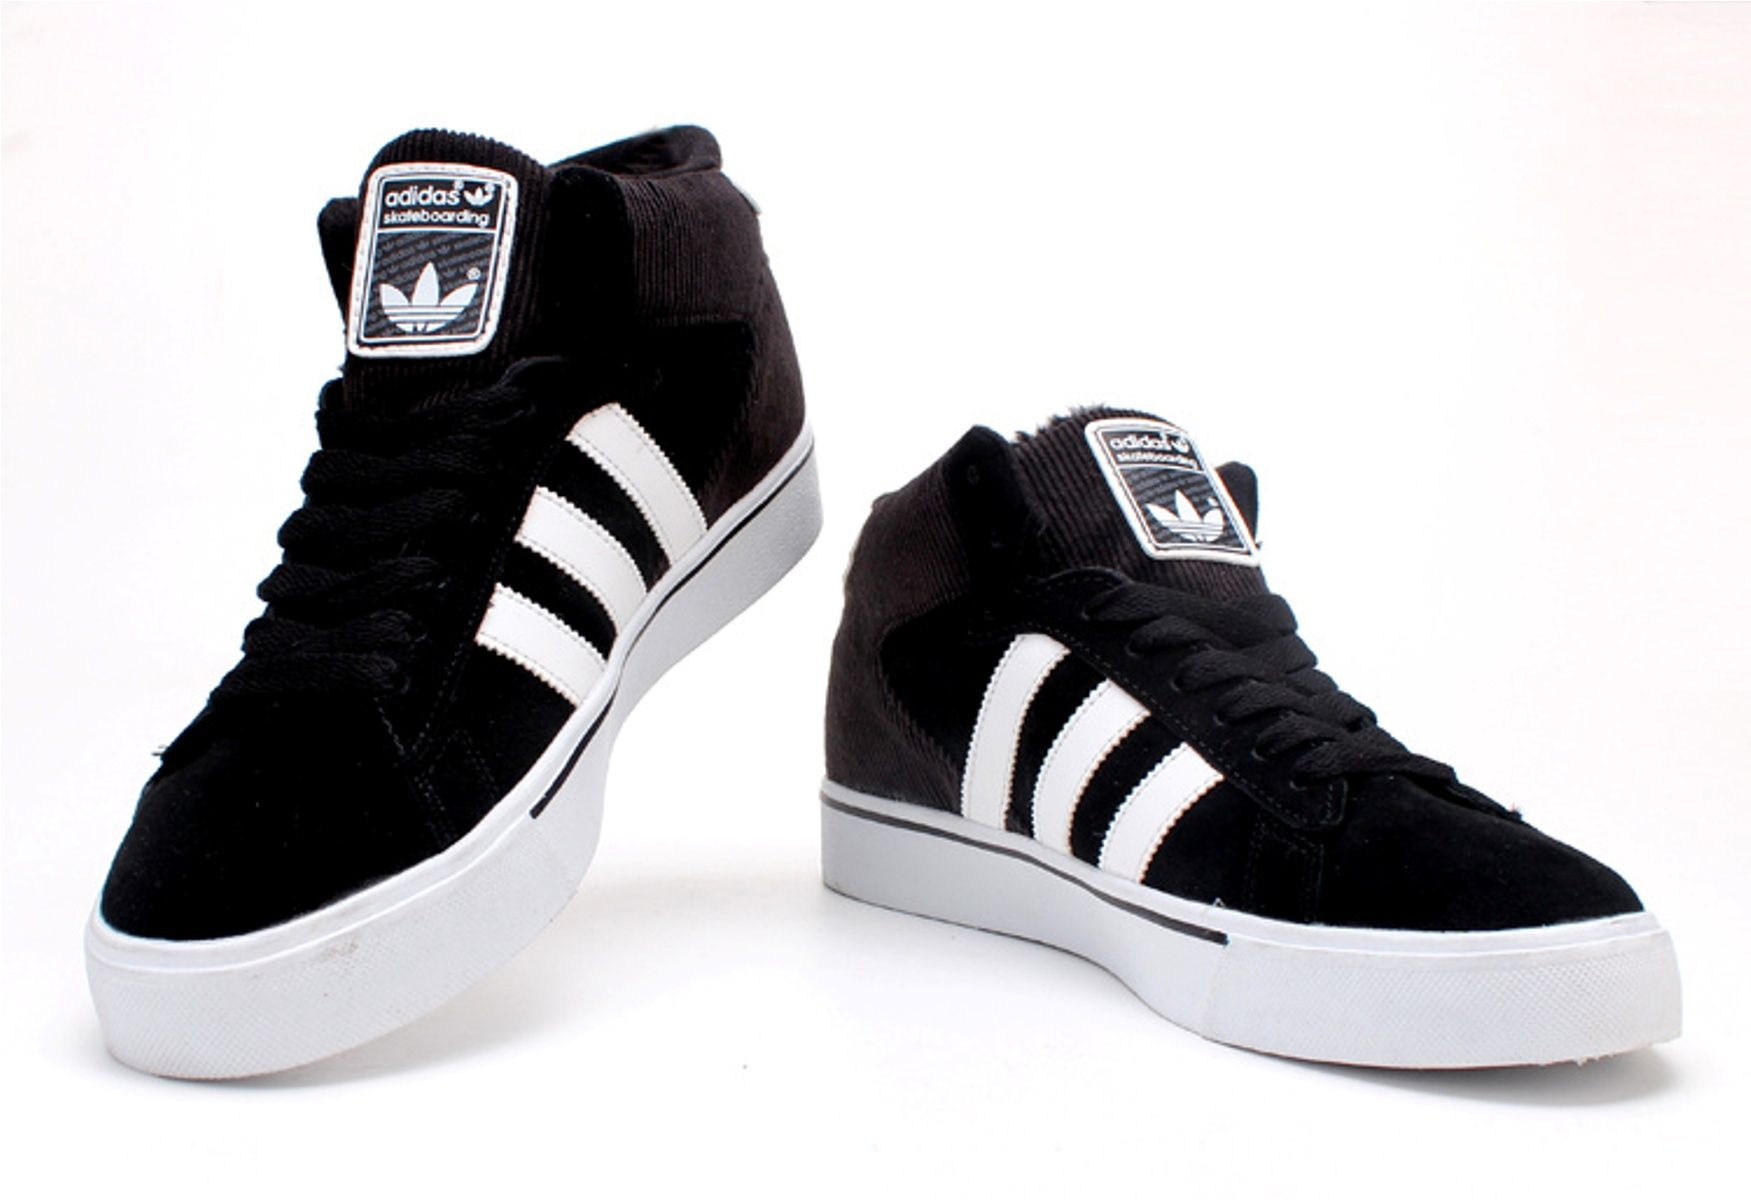 Adidas Originals Shoes 2014